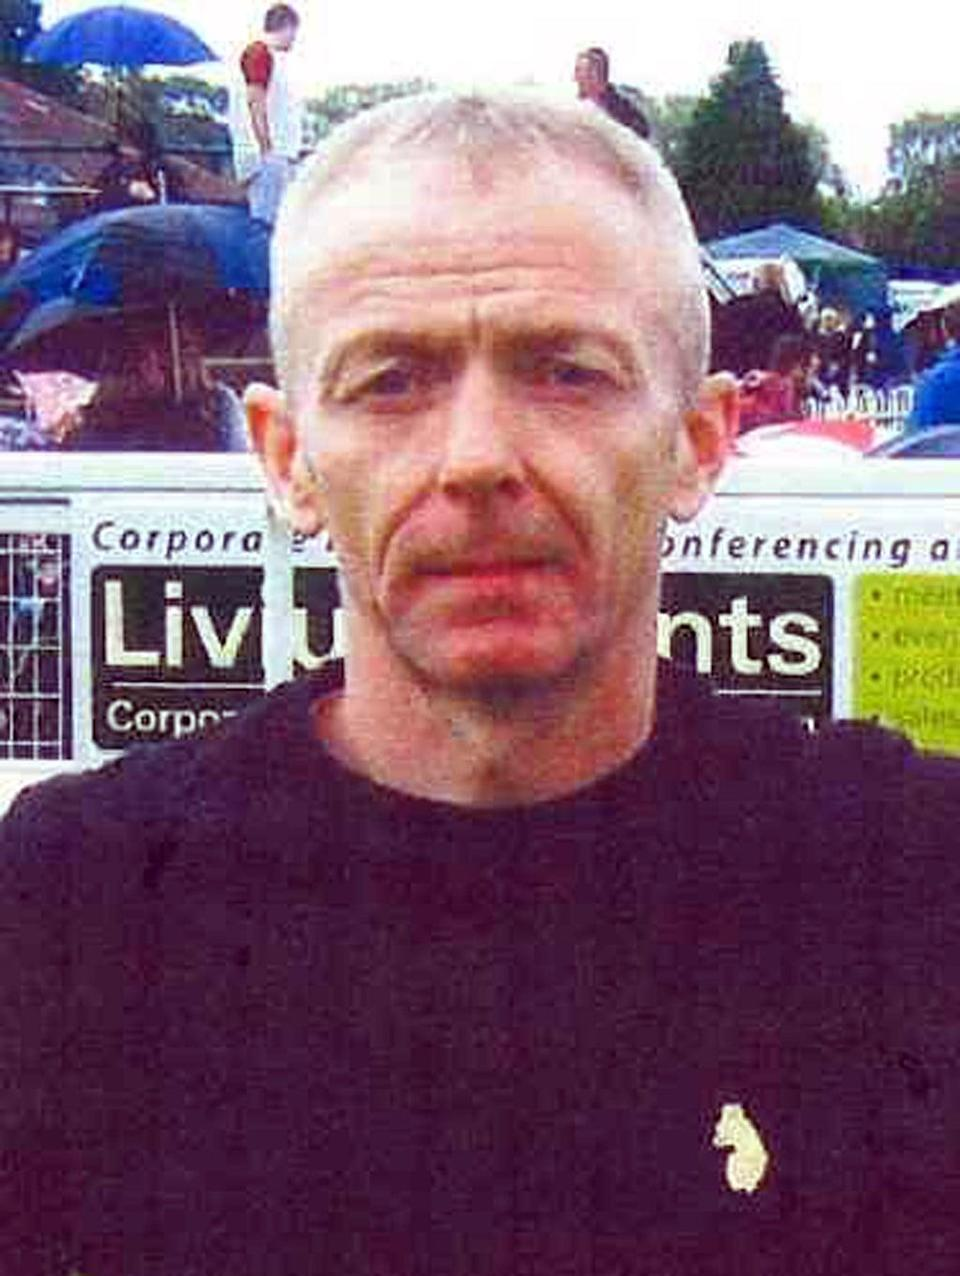 Police want to trace Mark Barrott (West Yorkshire Police/PA) (PA Media)